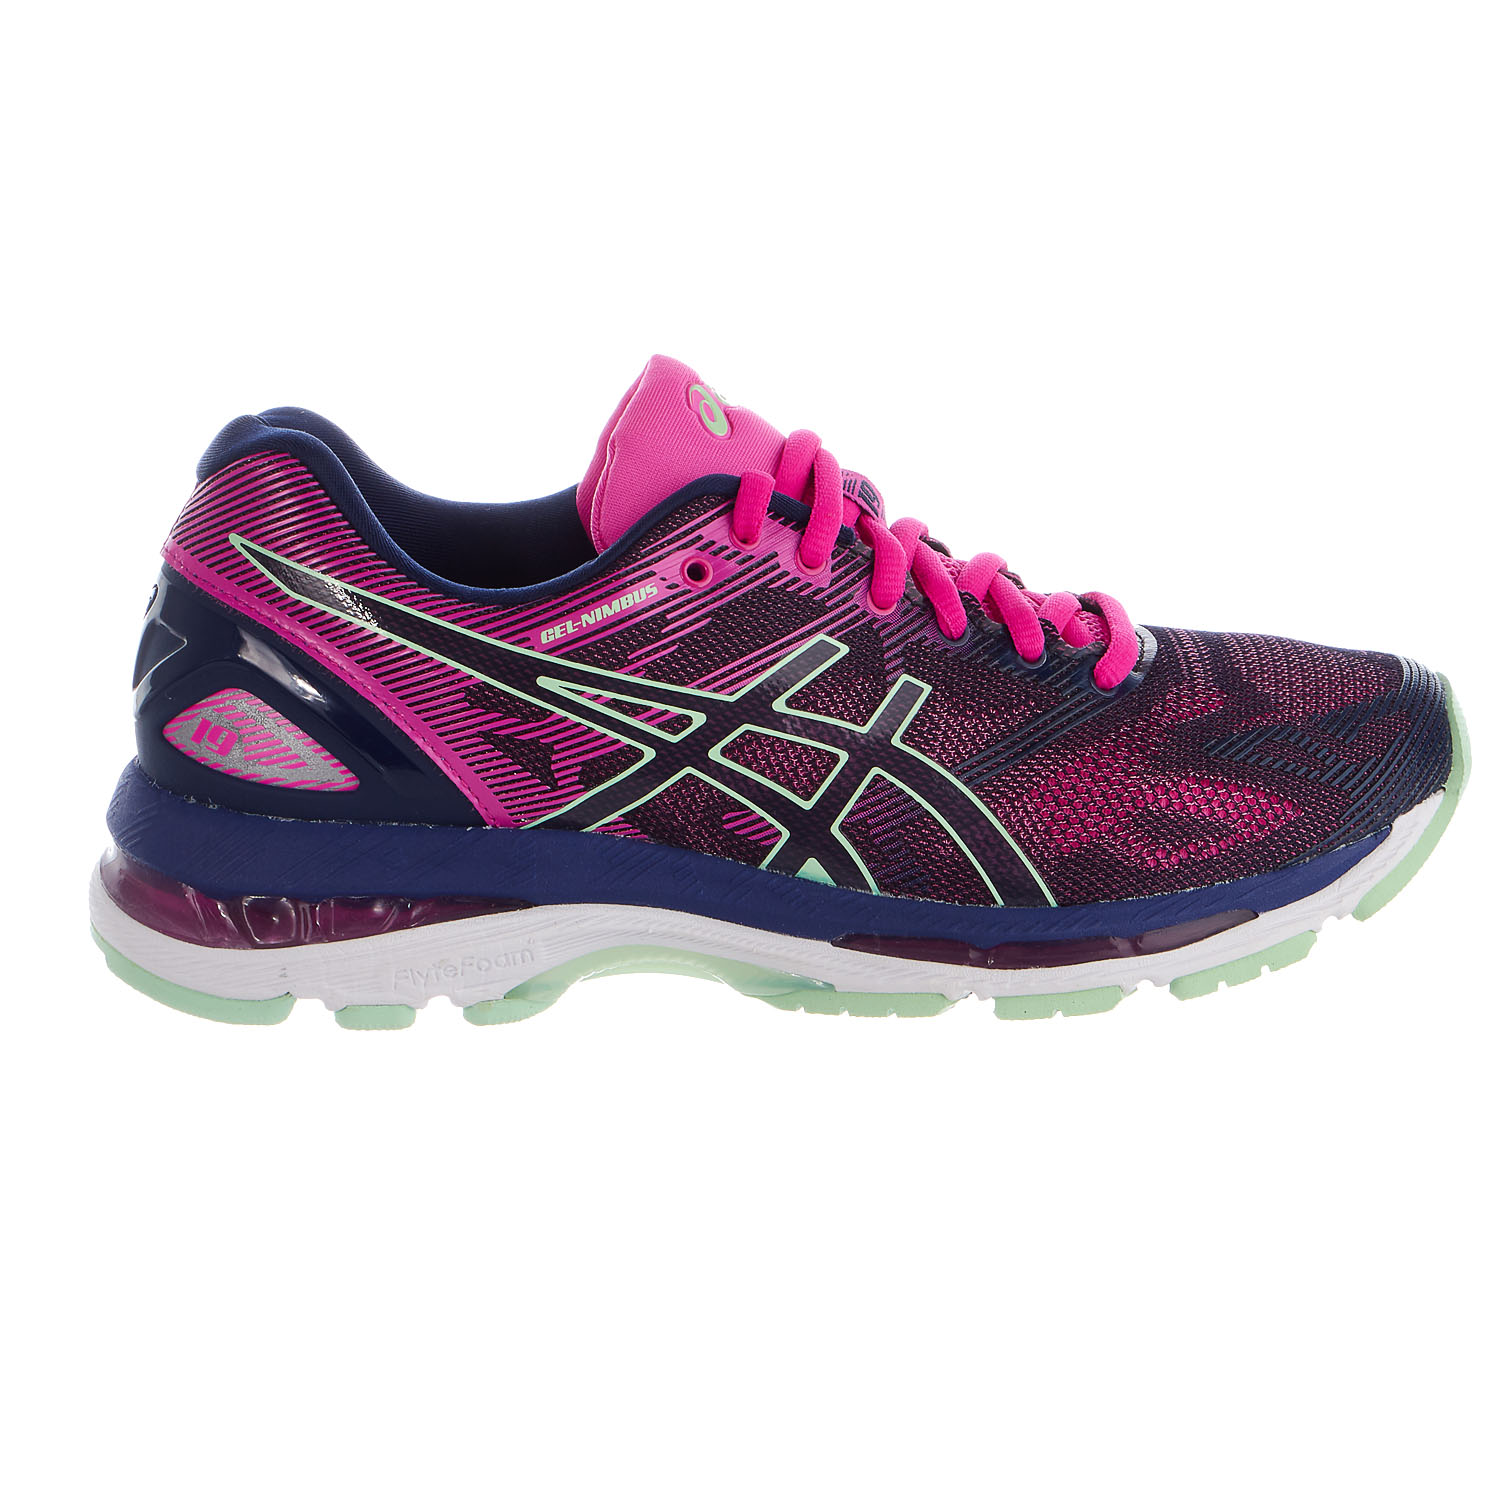 Asics Gel-Nimbus 19 Running Shoe Womens by Asics